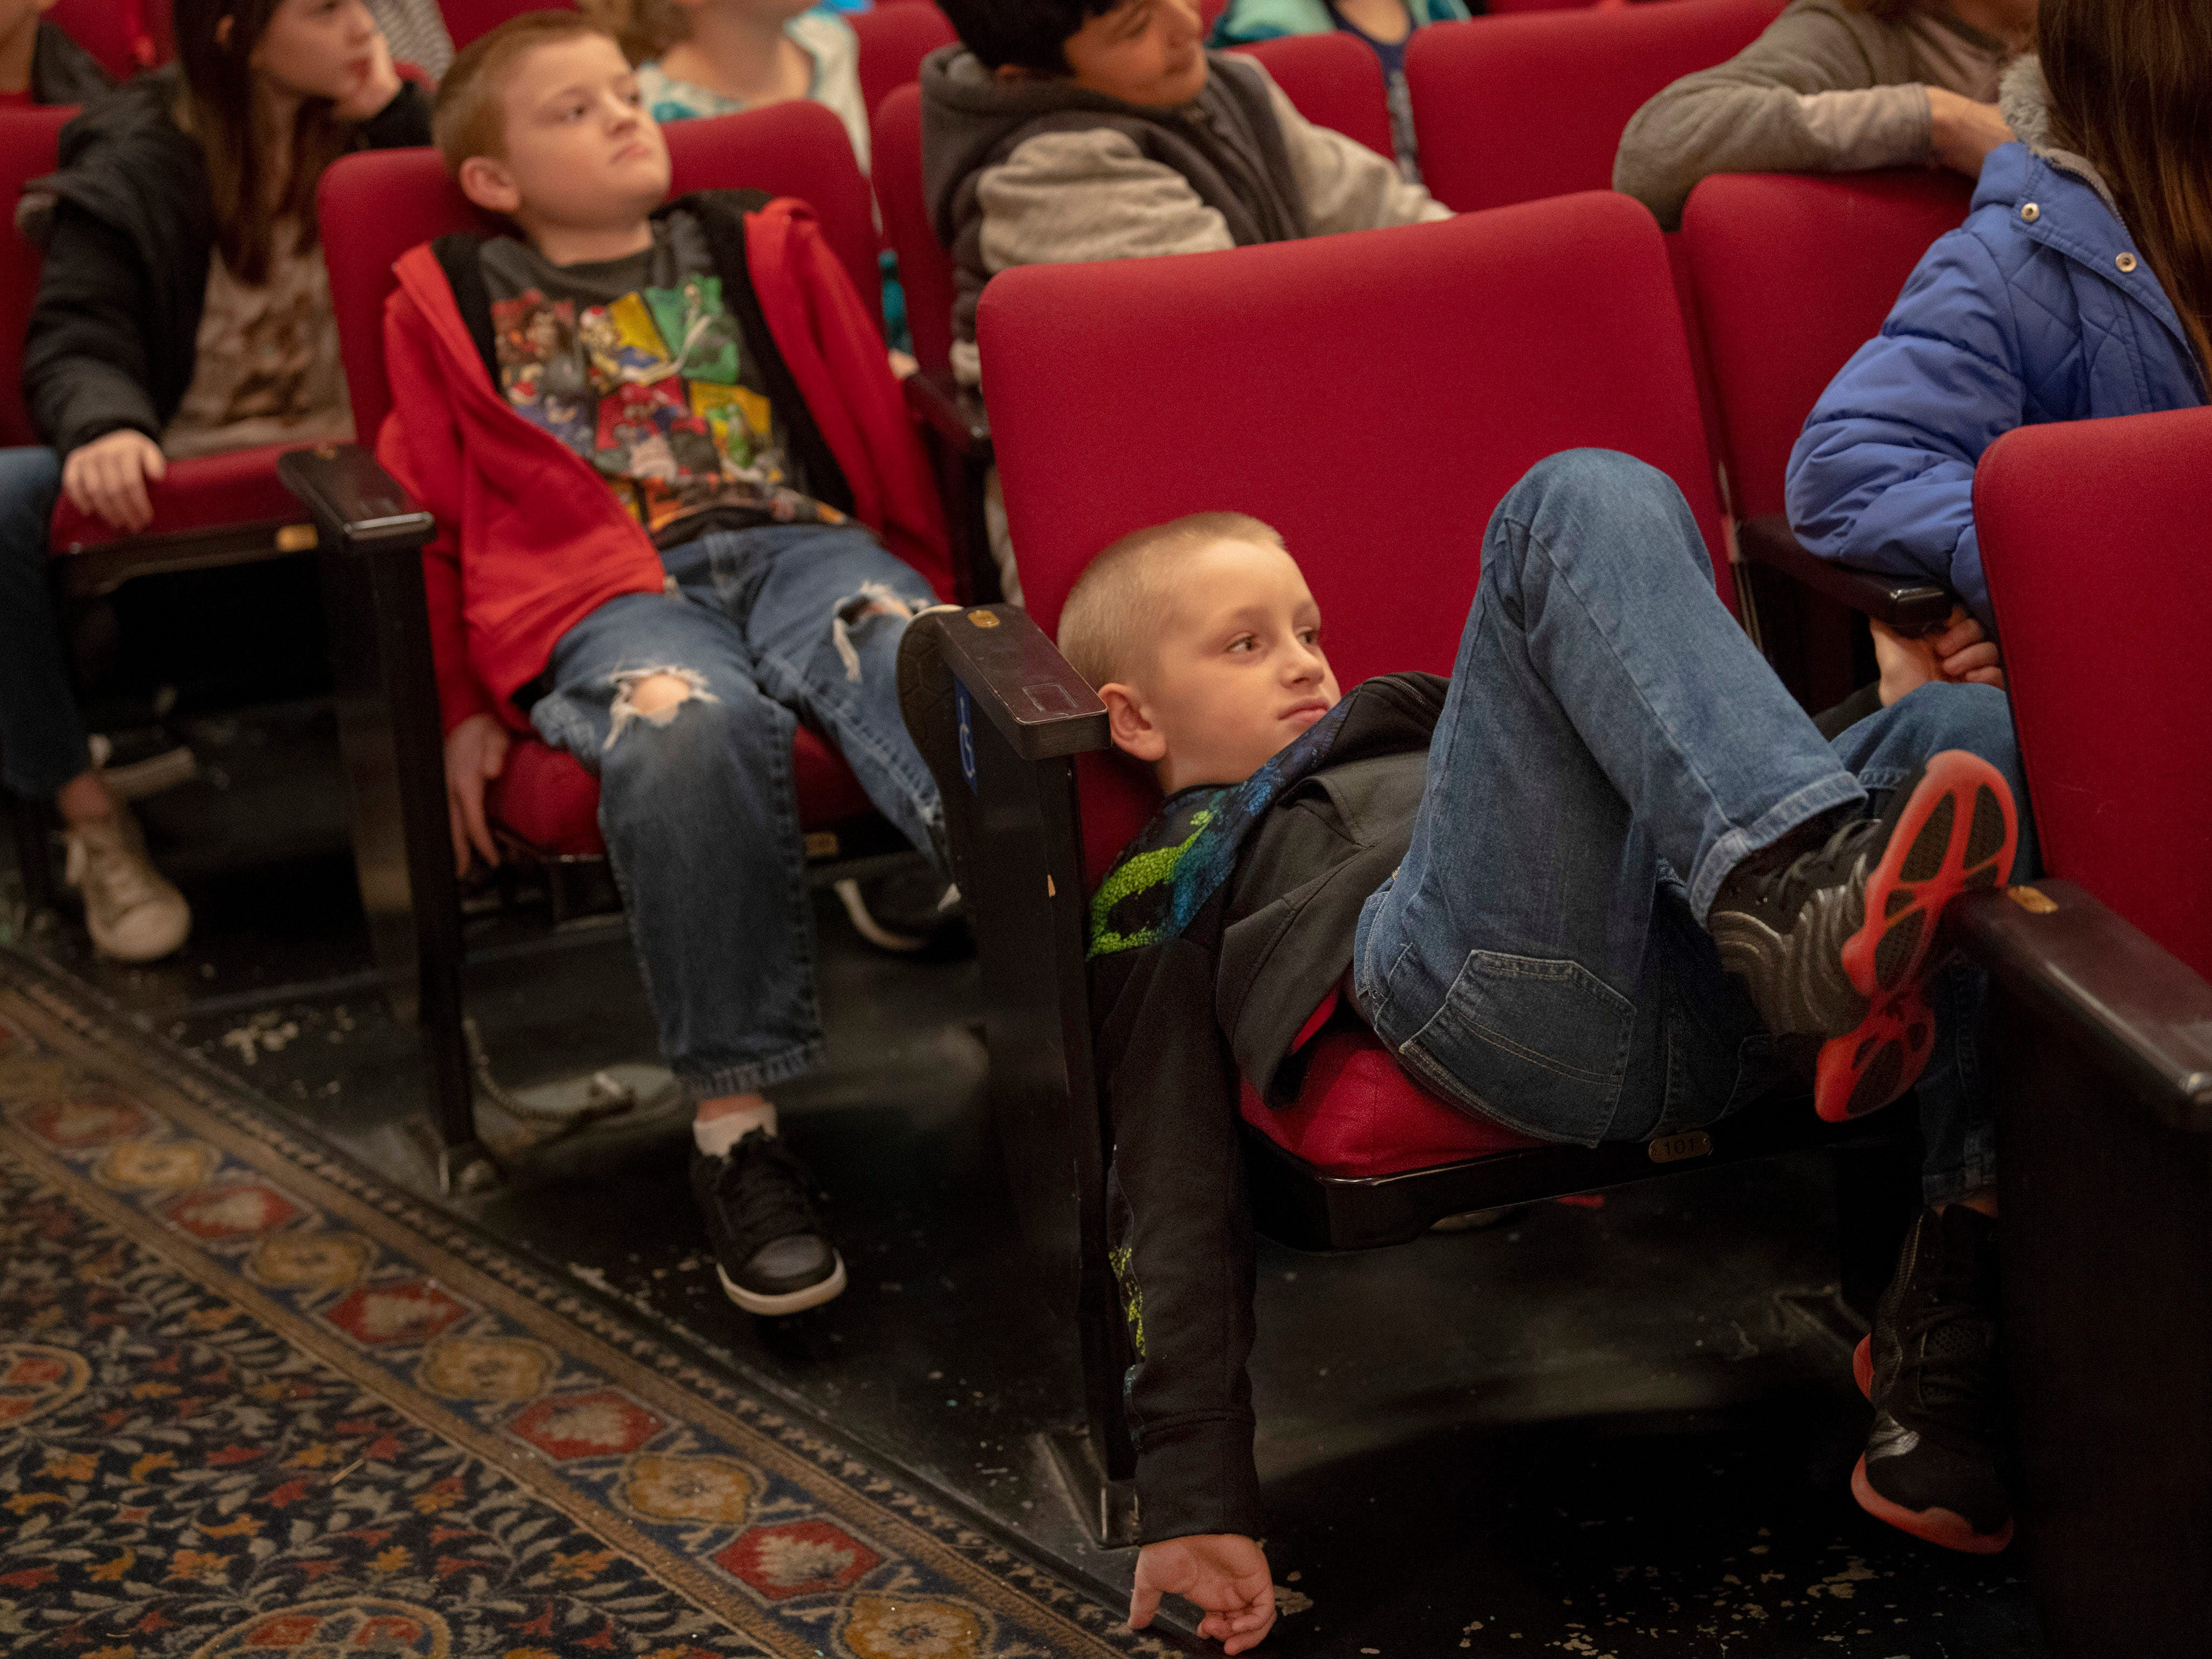 Michael Vailes, 9, a Highland Elementary School student, takes in the Young People's Concerts performed by the Evansville Philharmonic Orchestra at The Victory Thursday morning. The kids were attending the first concert when a series of tornado warnings necessitated the students take shelter in the building's basement and auditorium.